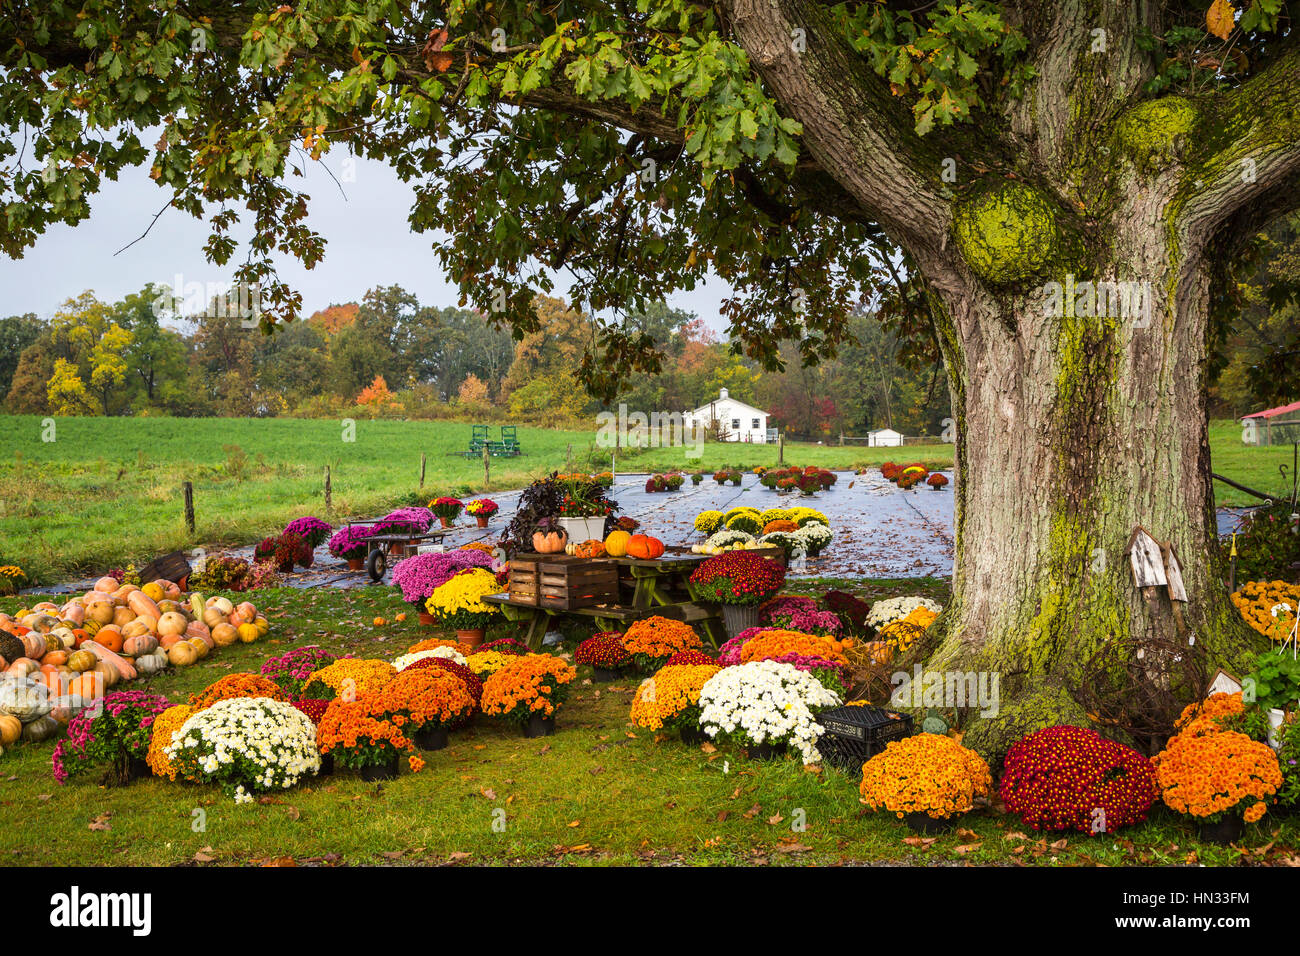 The Blessing Acres farm produce display of flowers near Berlin, Ohio, USA. - Stock Image